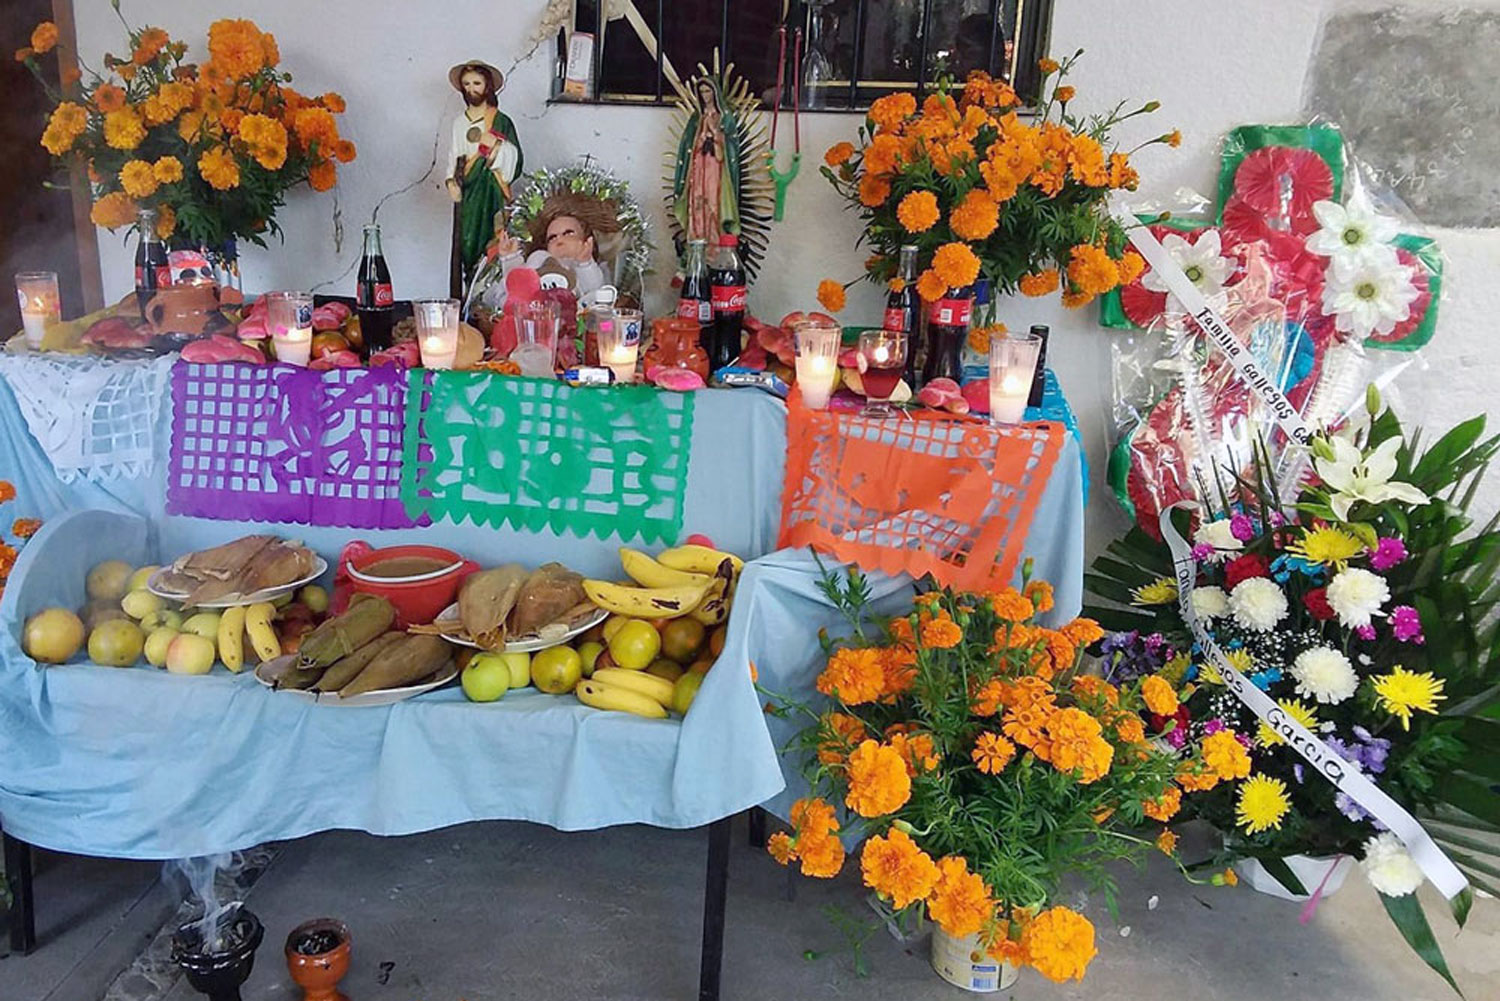 During Day of the Dead, people will put the food and drinks that their loved ones used to eat and drink out in memory of them.